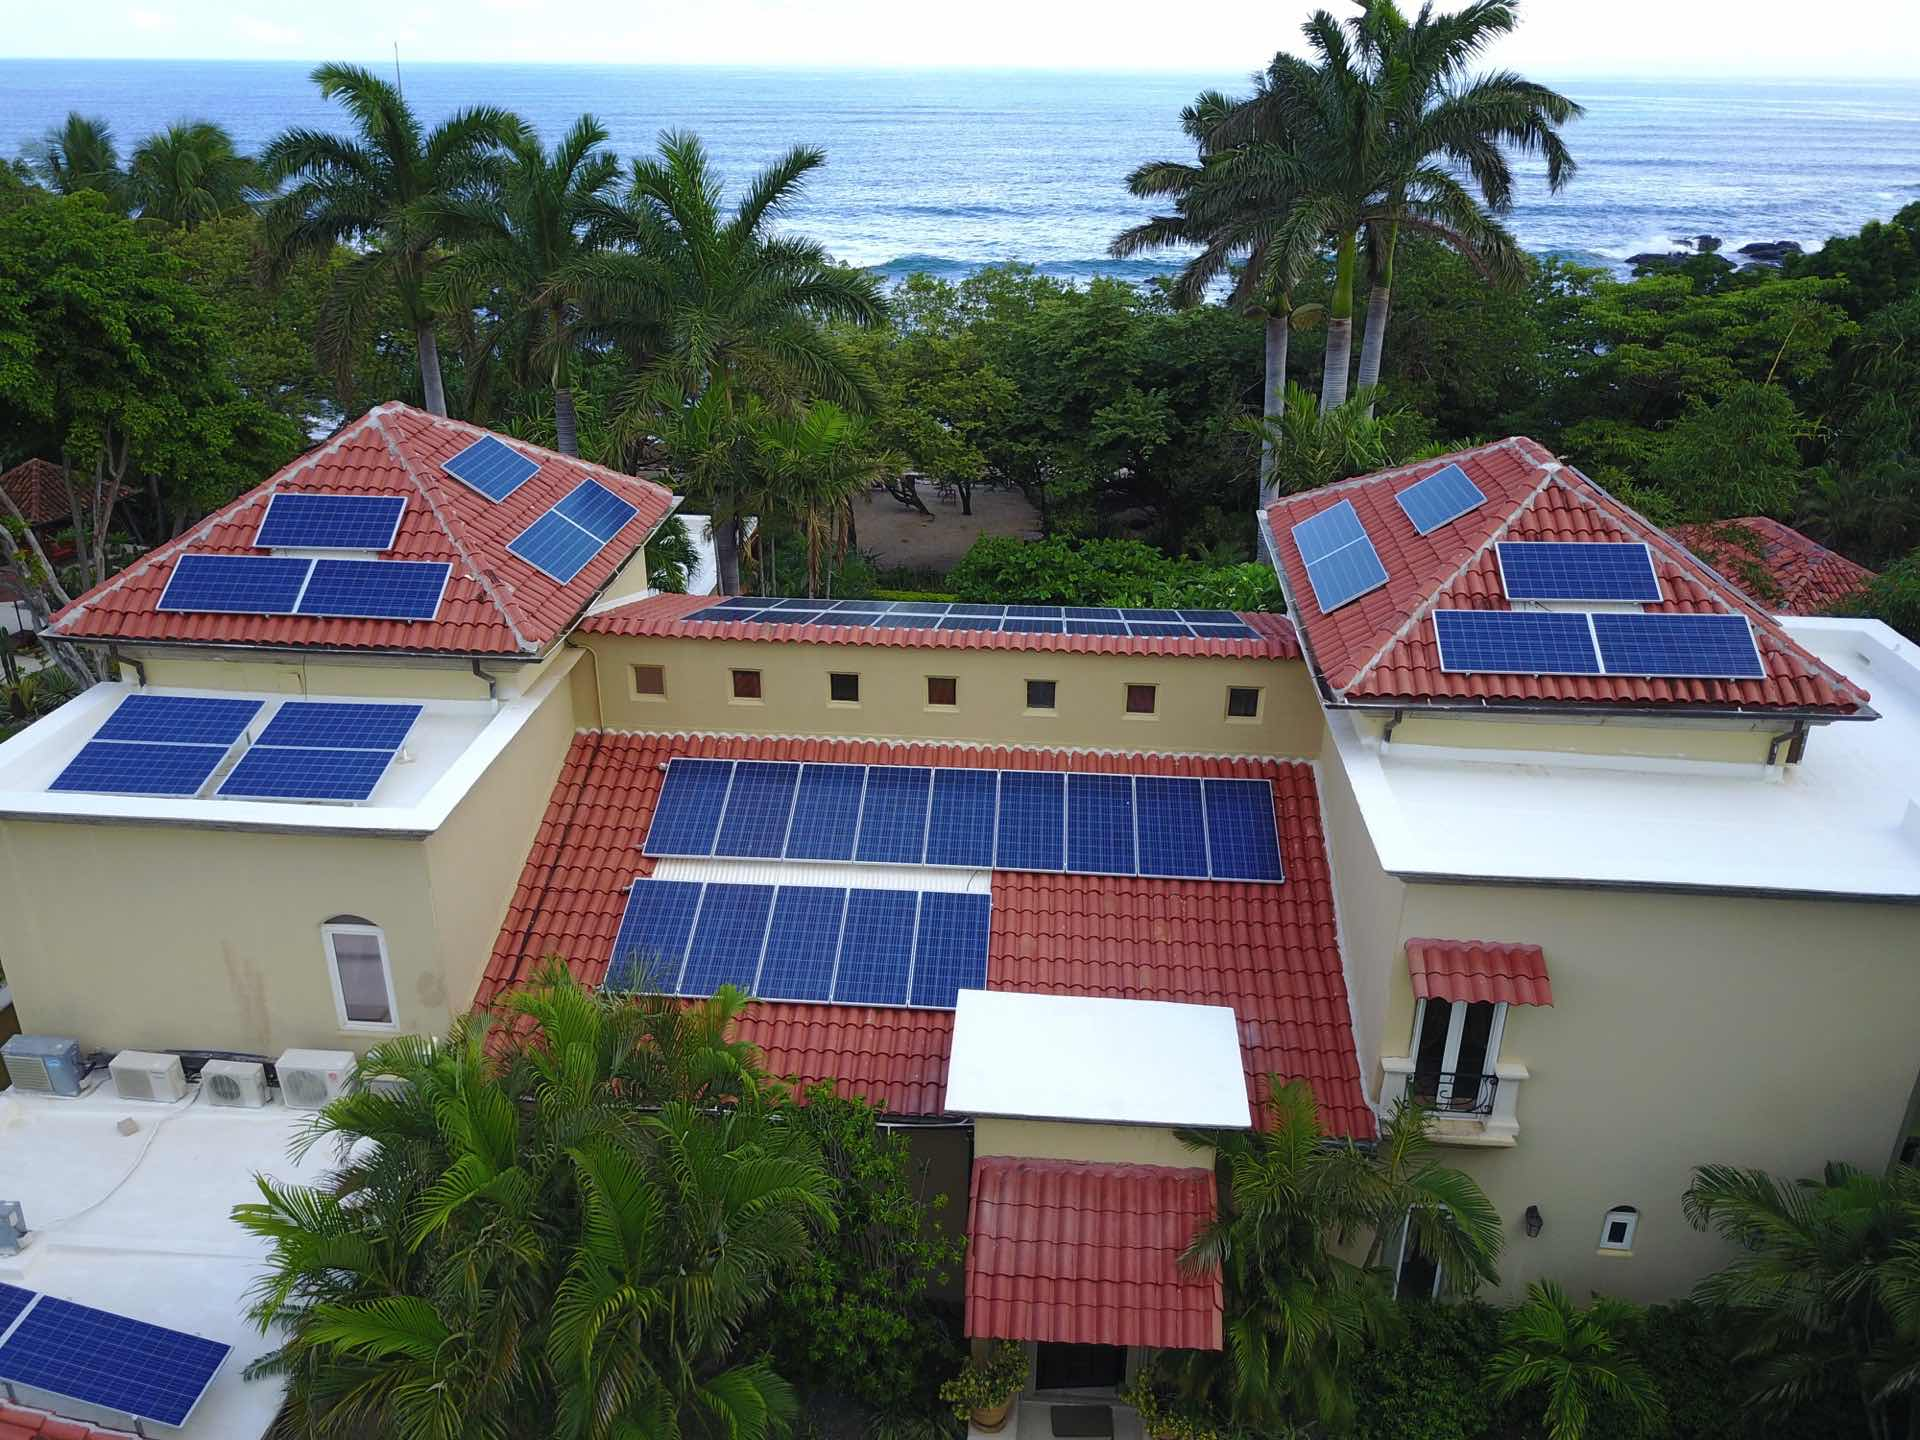 Solar panels make Casa de Luz easy on the environment